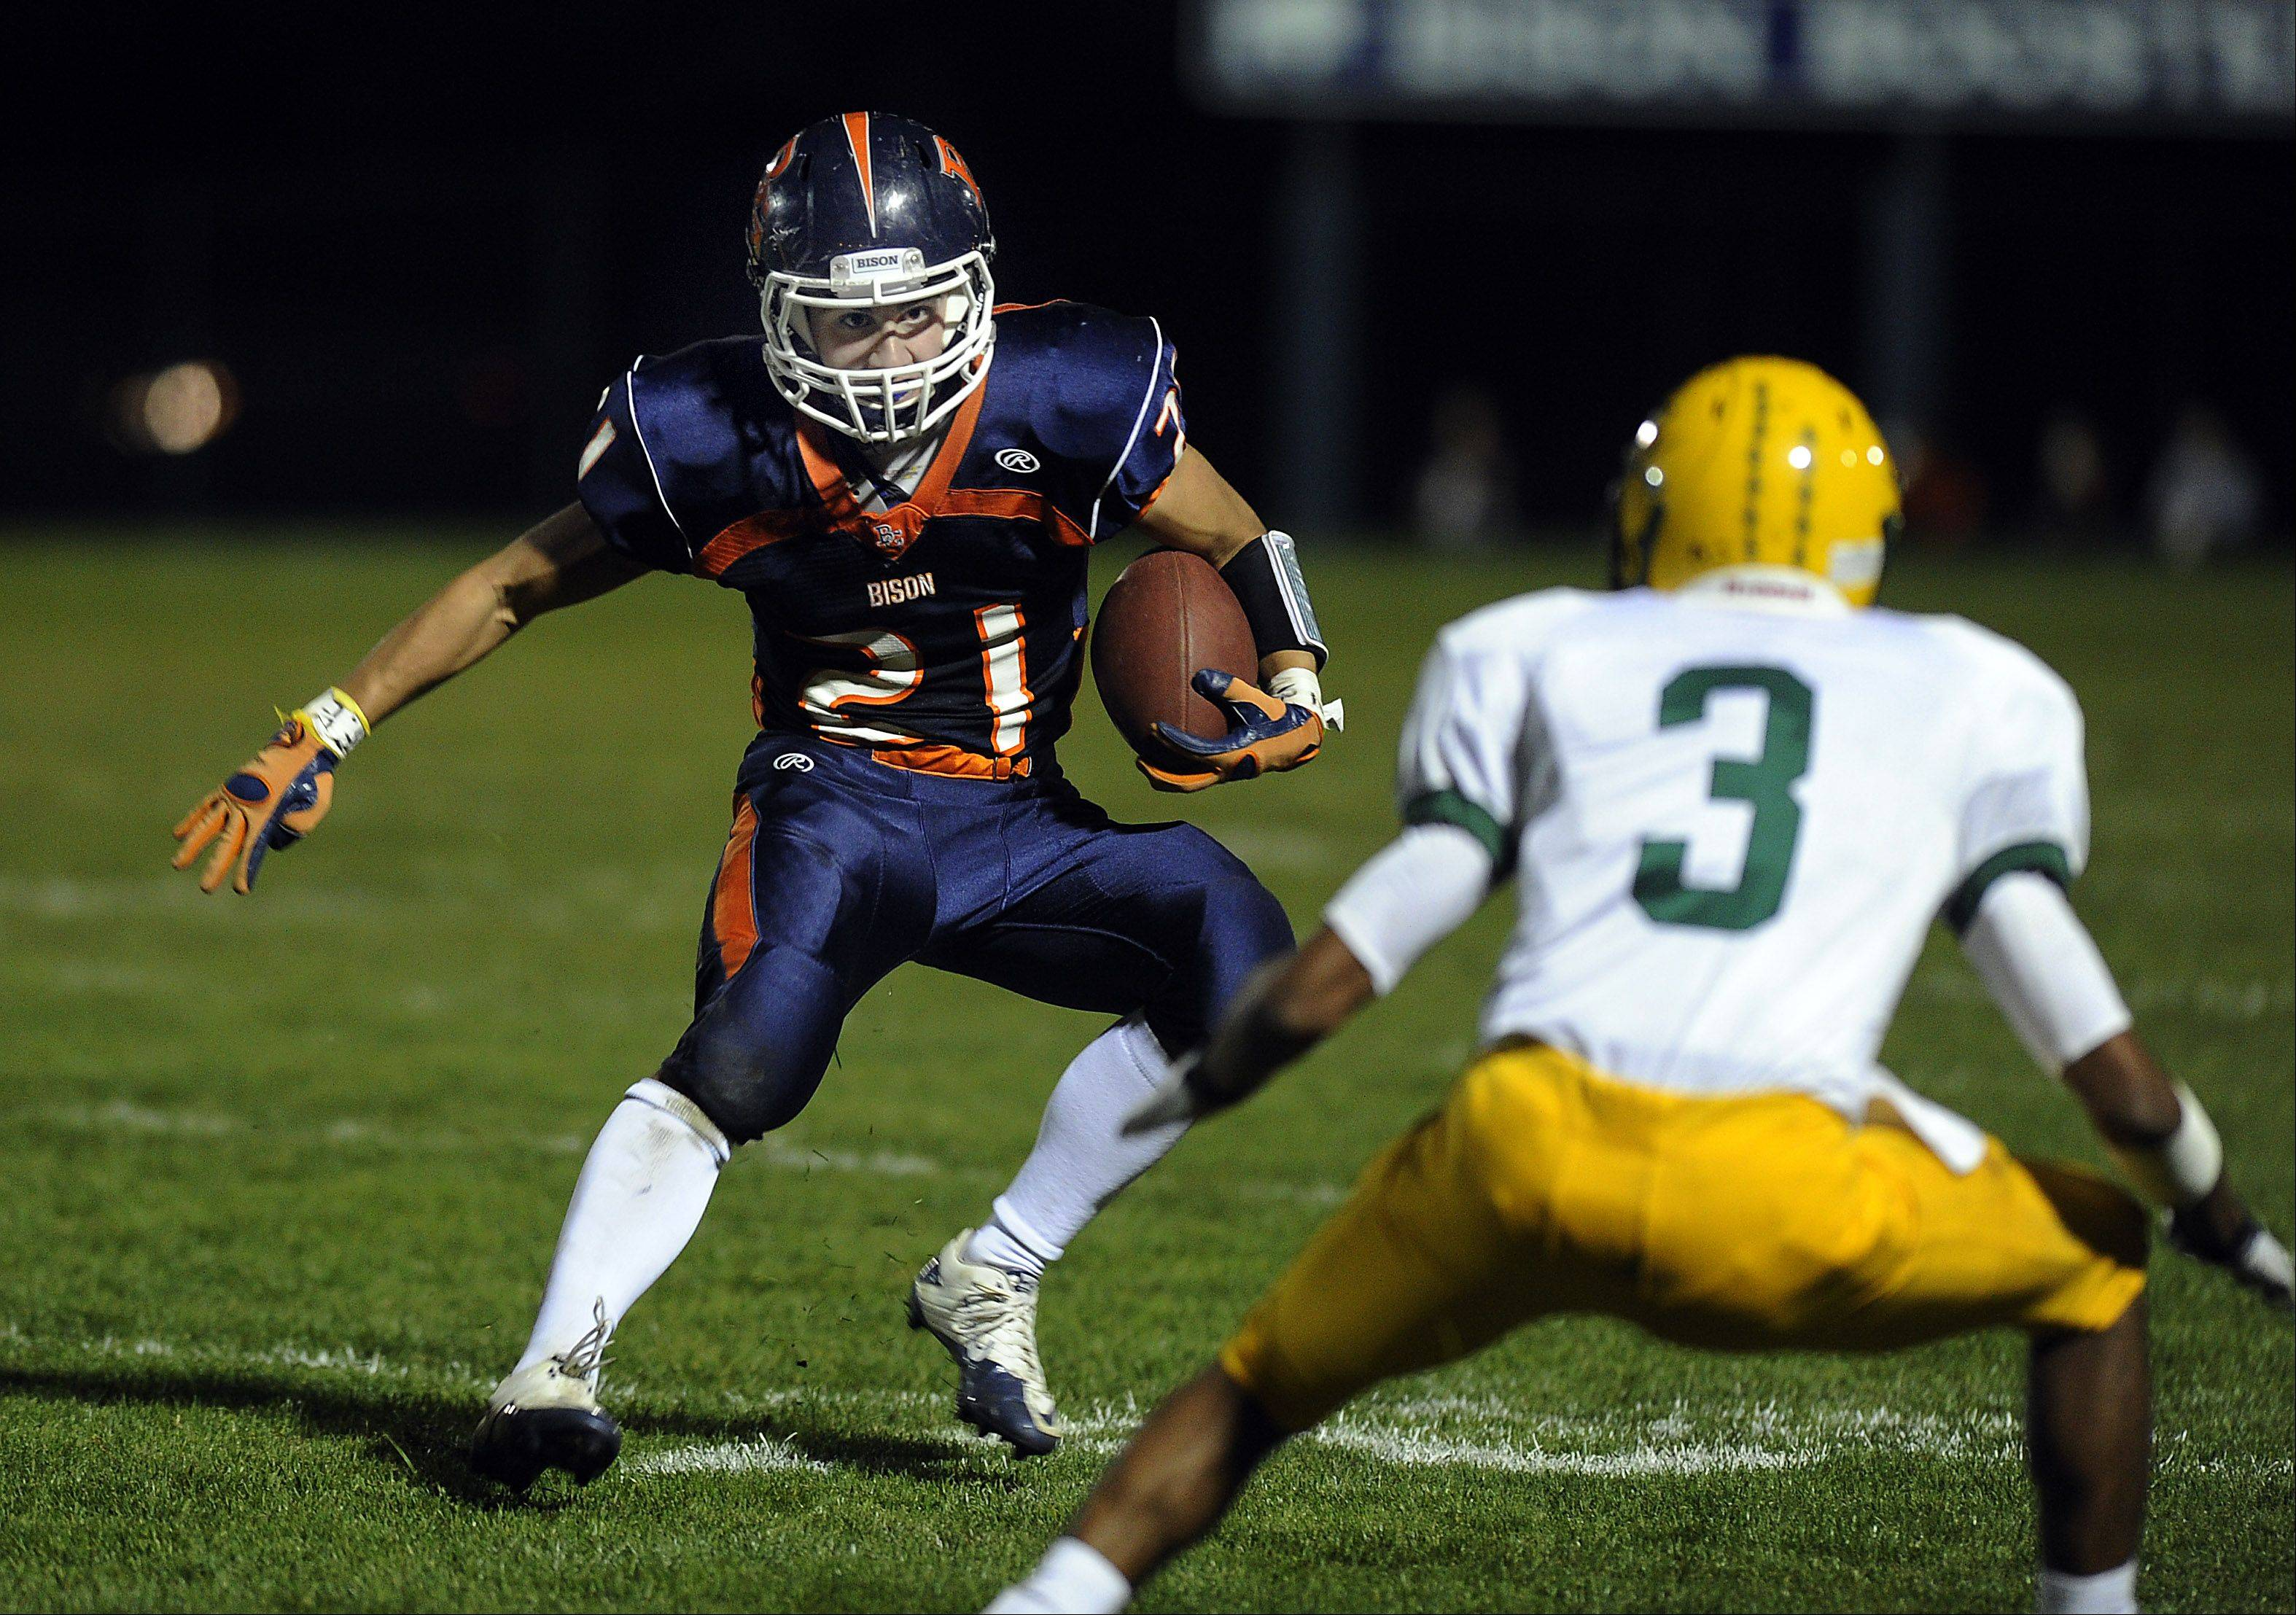 Buffalo Grove�s Alex Fritz stares down Elk Grove�s Kishan Patel while he picks up yardage on slippery grass at Buffalo Grove on Friday.